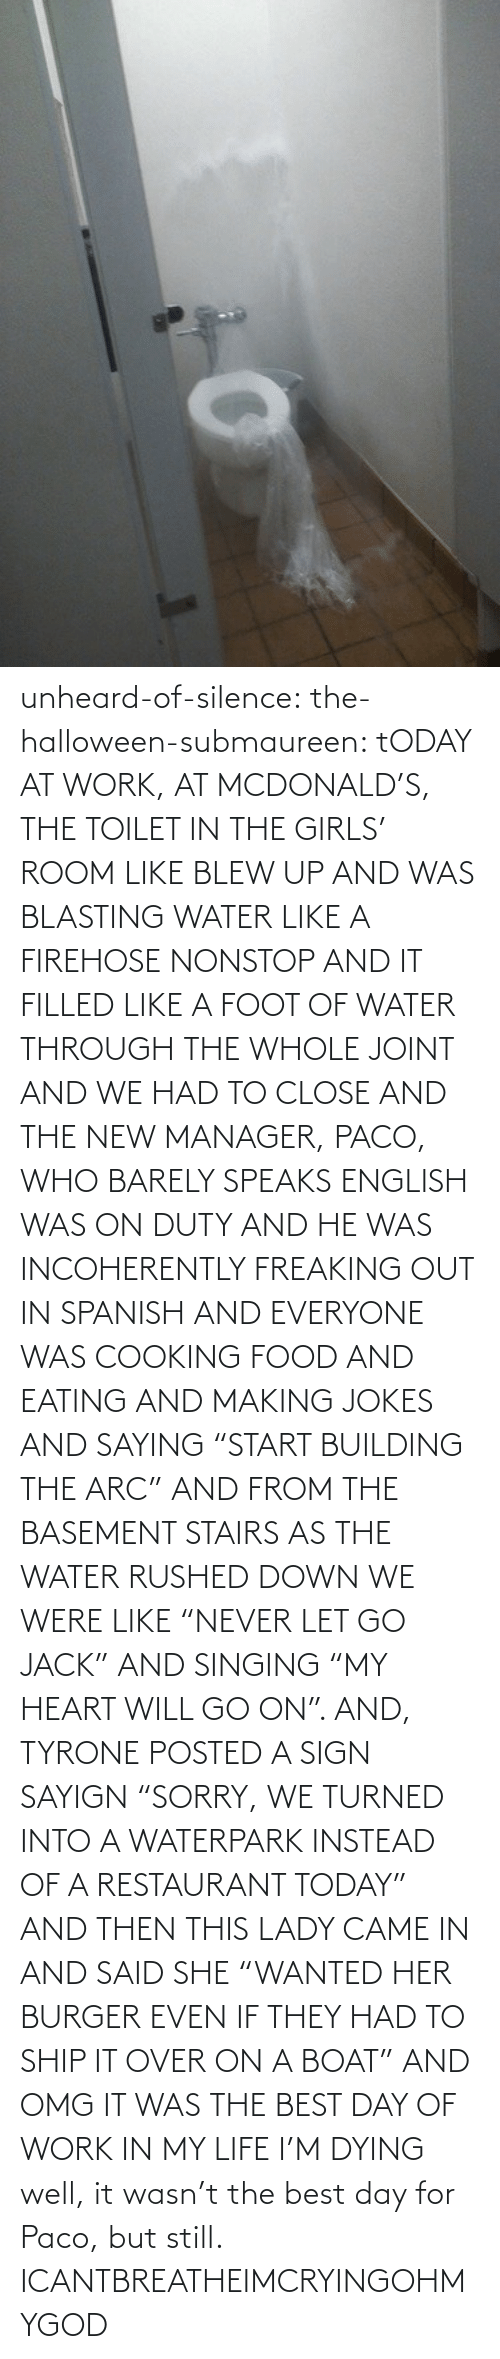 """And The New: unheard-of-silence:  the-halloween-submaureen:  tODAY AT WORK, AT MCDONALD'S, THE TOILET IN THE GIRLS' ROOM LIKE BLEW UP AND WAS BLASTING WATER LIKE A FIREHOSE NONSTOP AND IT FILLED LIKE A FOOT OF WATER THROUGH THE WHOLE JOINT AND WE HAD TO CLOSE AND THE NEW MANAGER, PACO, WHO BARELY SPEAKS ENGLISH WAS ON DUTY AND HE WAS INCOHERENTLY FREAKING OUT IN SPANISH AND EVERYONE WAS COOKING FOOD AND EATING AND MAKING JOKES AND SAYING """"START BUILDING THE ARC"""" AND FROM THE BASEMENT STAIRS AS THE WATER RUSHED DOWN WE WERE LIKE """"NEVER LET GO JACK"""" AND SINGING """"MY HEART WILL GO ON"""". AND, TYRONE POSTED A SIGN SAYIGN """"SORRY, WE TURNED INTO A WATERPARK INSTEAD OF A RESTAURANT TODAY"""" AND THEN THIS LADY CAME IN AND SAID SHE """"WANTED HER BURGER EVEN IF THEY HAD TO SHIP IT OVER ON A BOAT"""" AND OMG IT WAS THE BEST DAY OF WORK IN MY LIFE I'M DYING well, it wasn't the best day for Paco, but still.  ICANTBREATHEIMCRYINGOHMYGOD"""